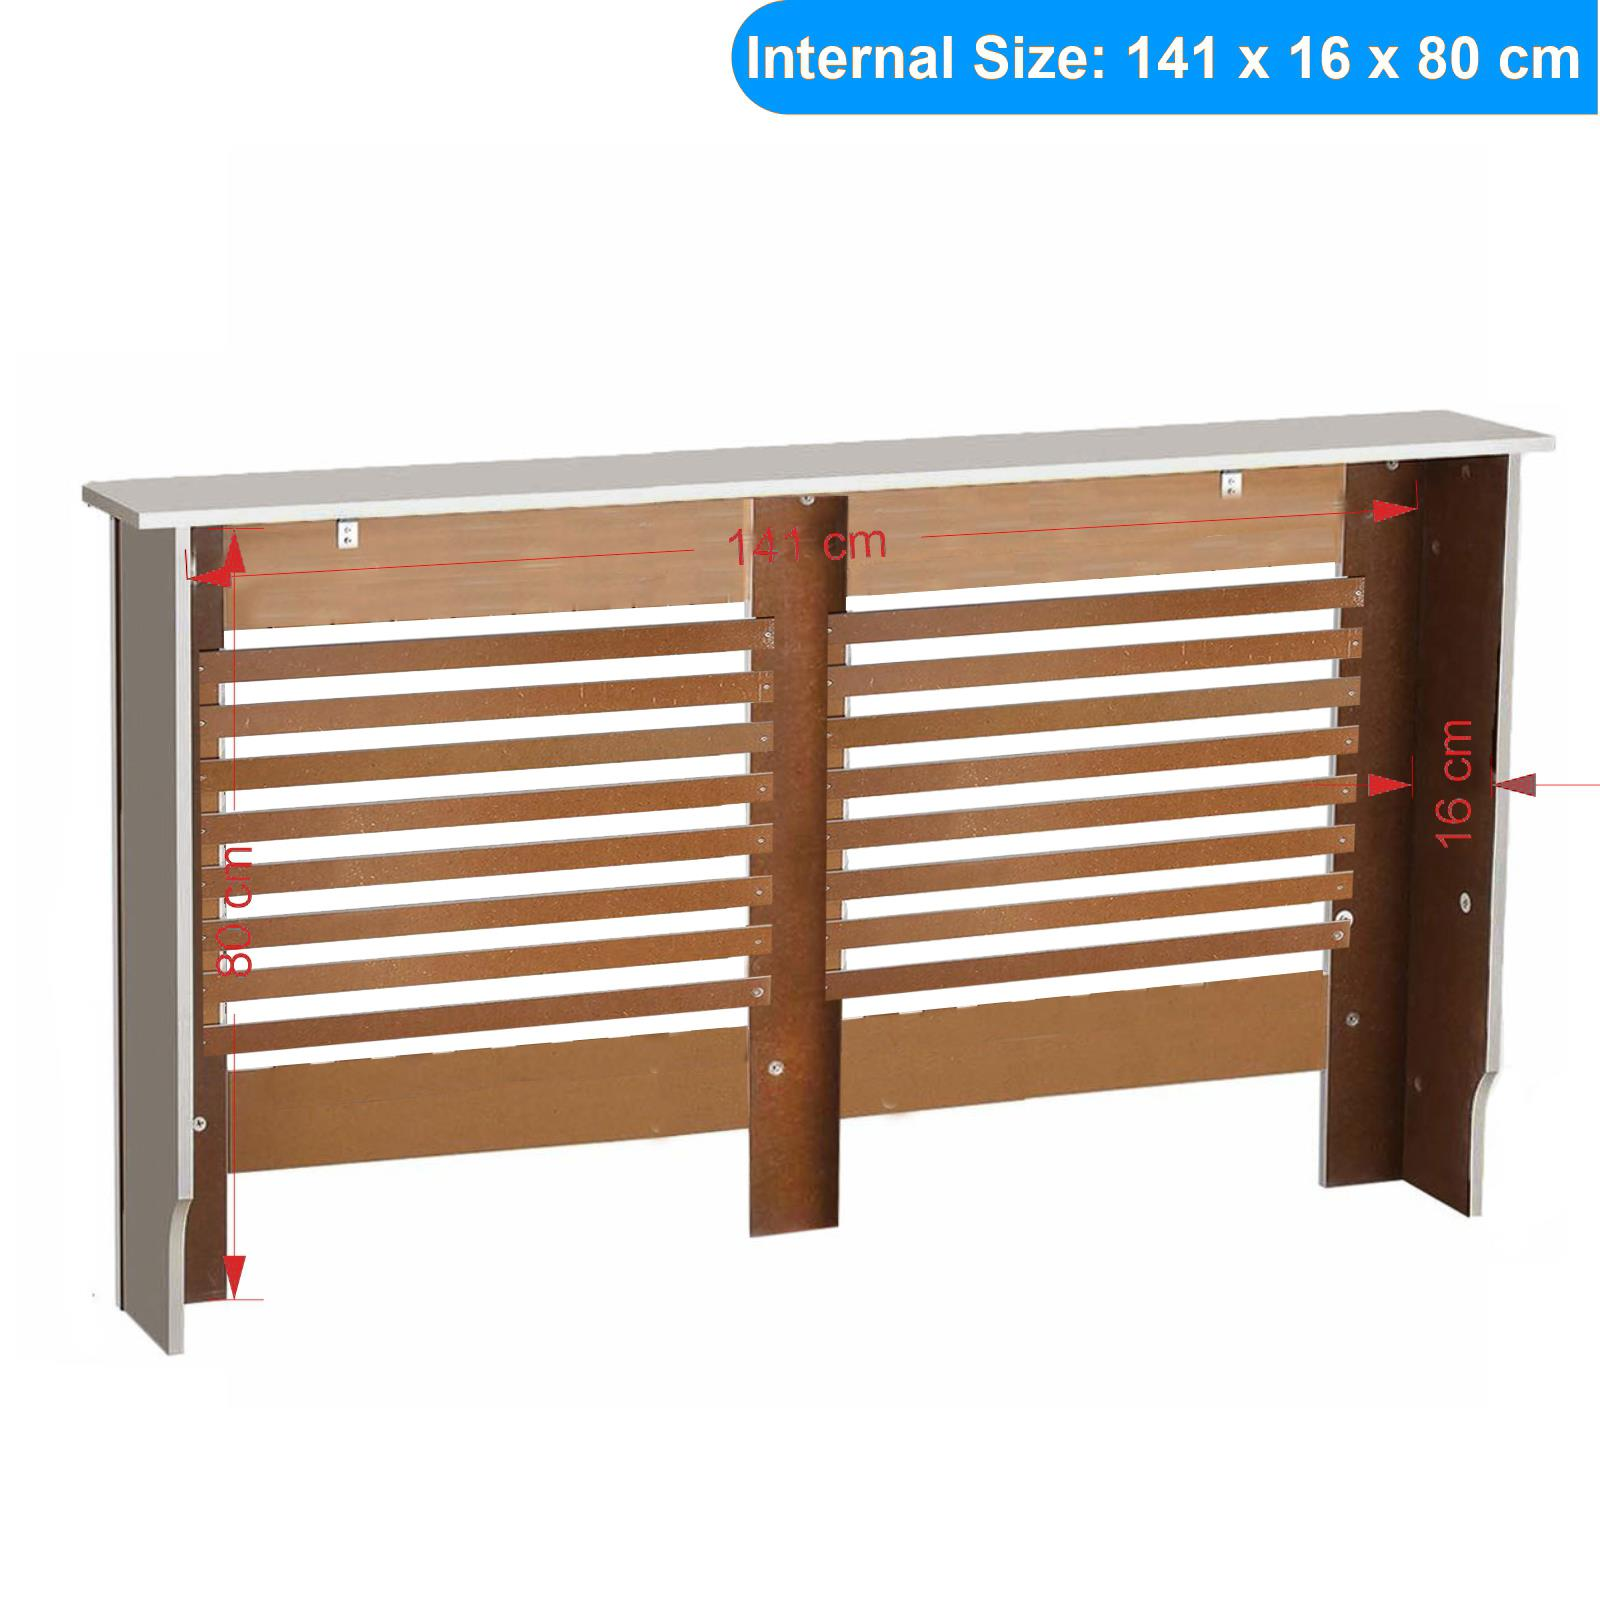 White-Radiator-Cover-Cabinet-Small-Large-Modern-MDF-Slat-Wood-Grill-Furniture miniatuur 16